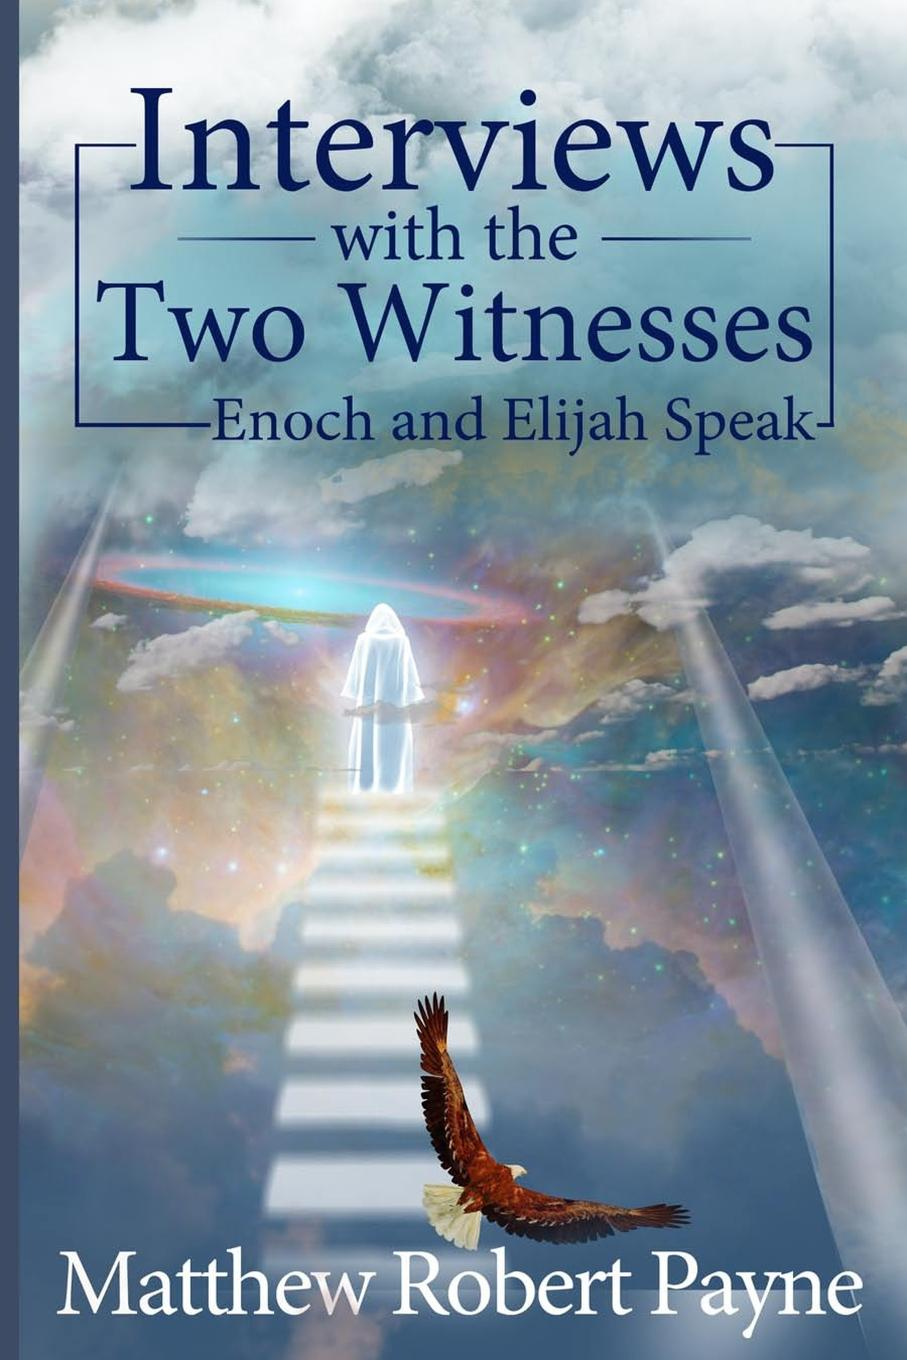 Matthew Robert Payne Interviews with the Two Witnesses. Enoch and Elijah Speak